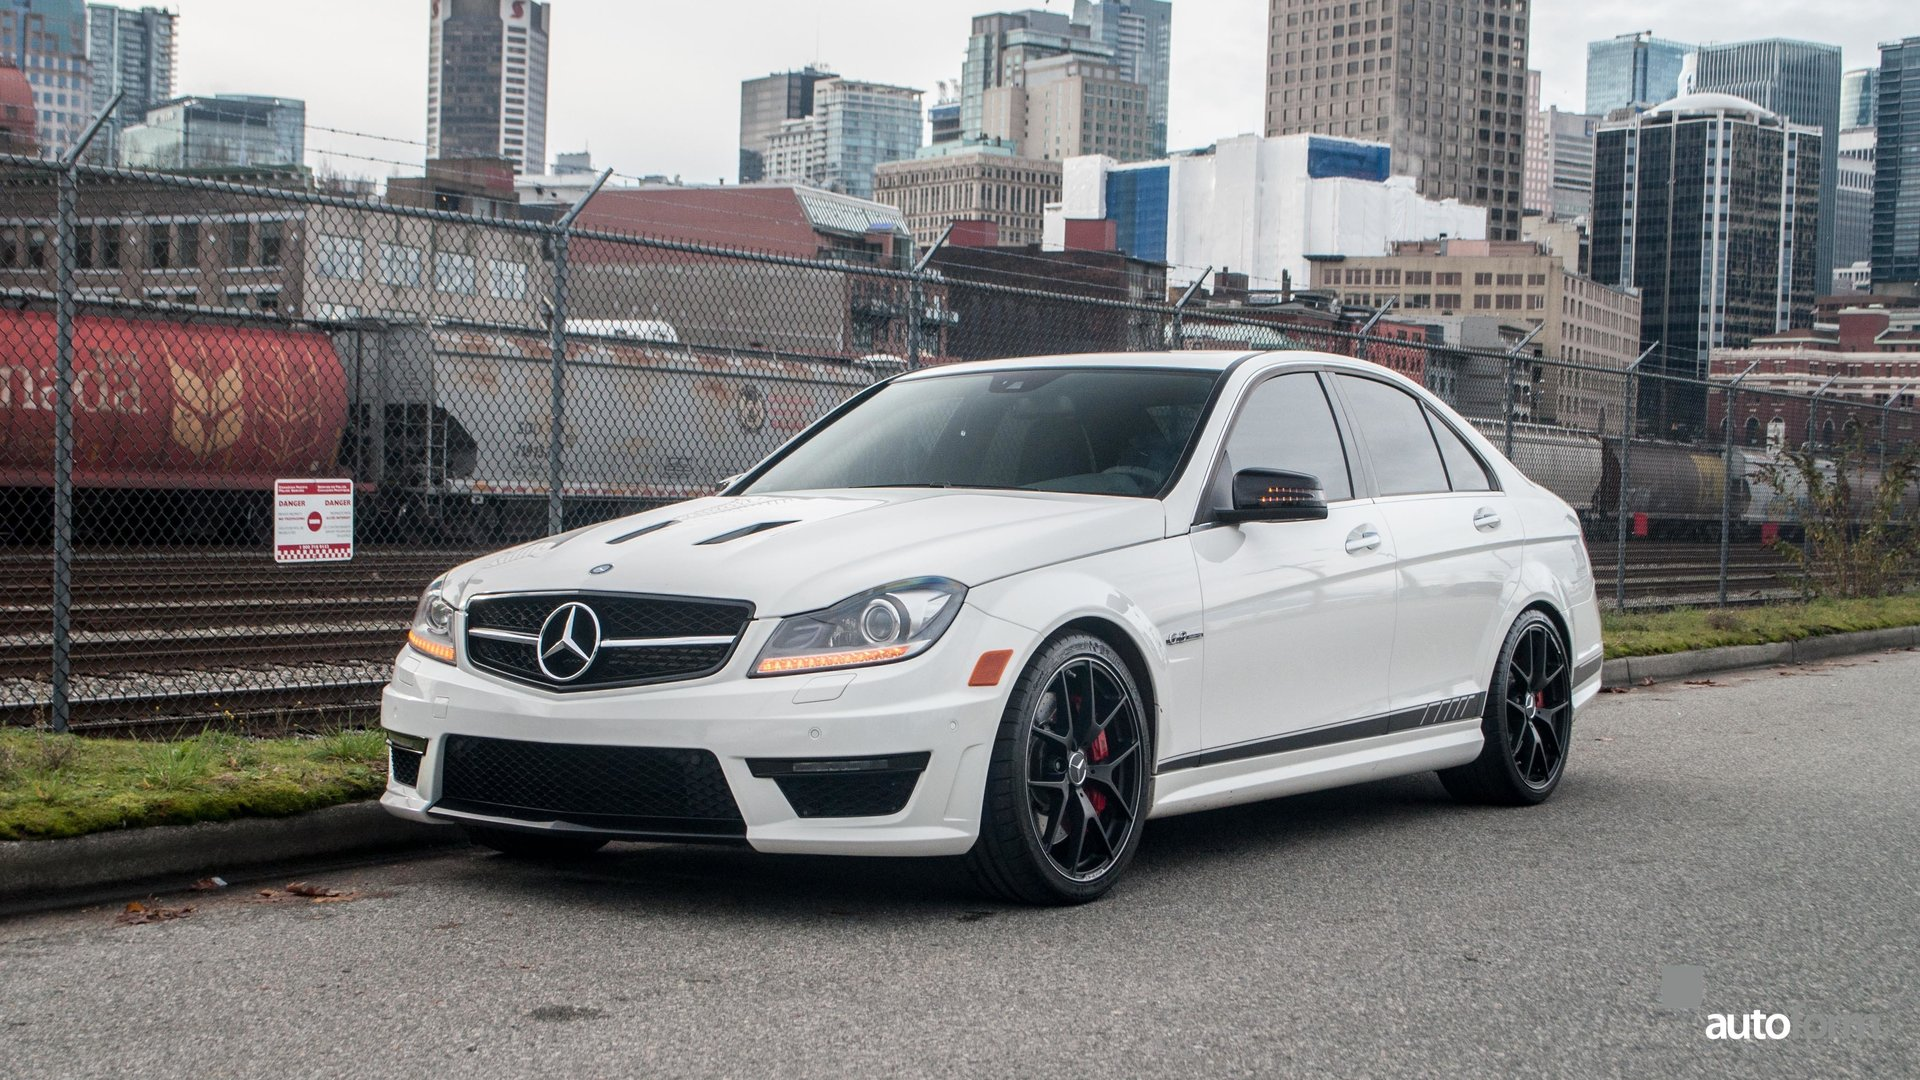 2014 mercedes benz c63 amg 507 edition autoform for 2014 mercedes benz c63 amg edition 507 for sale